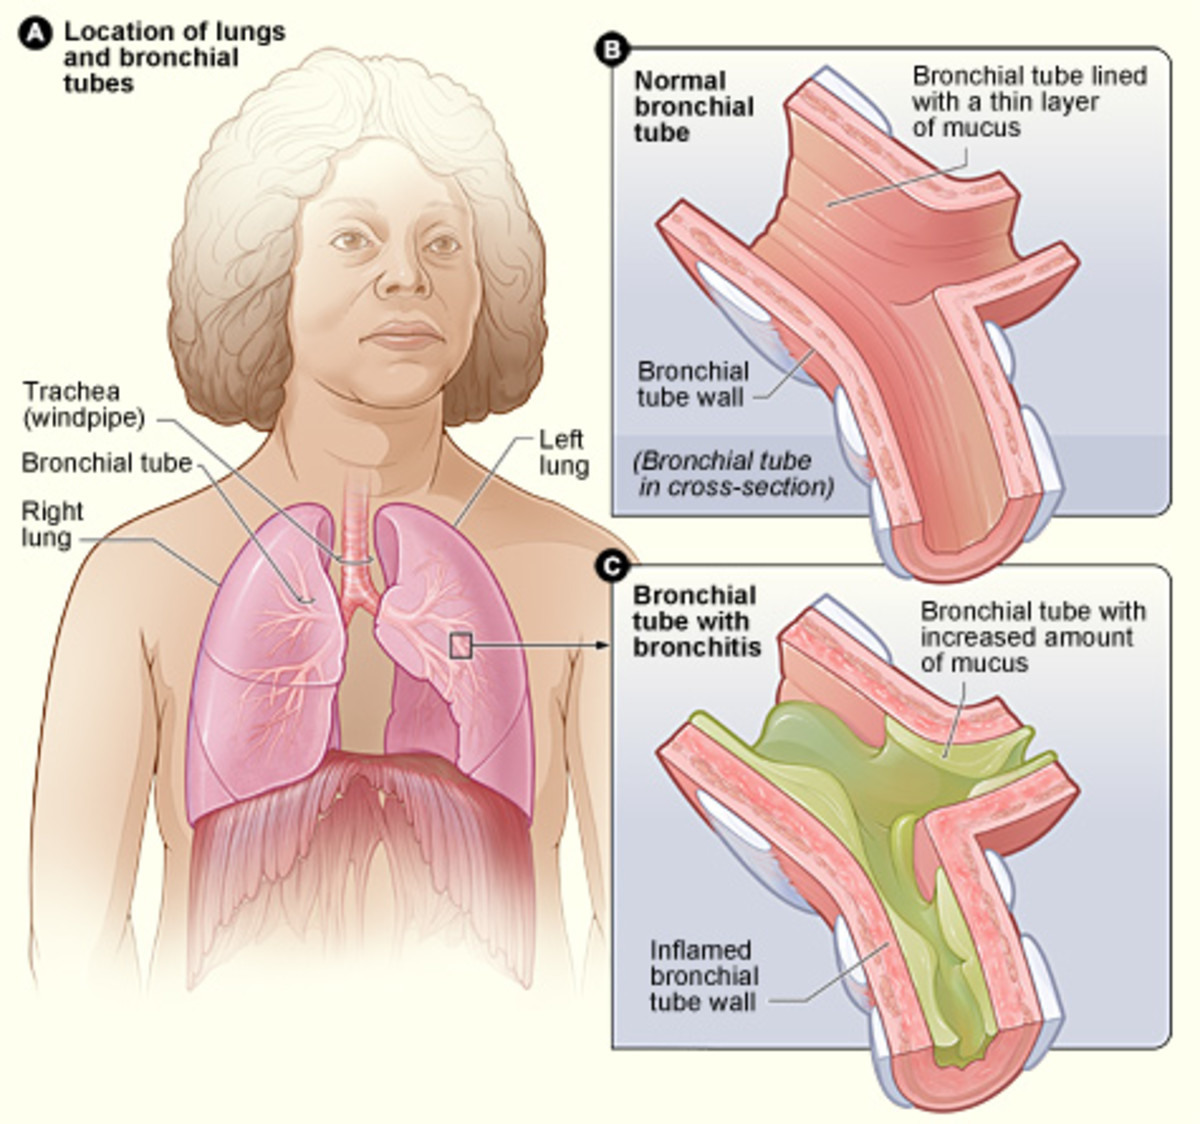 English: Figure A shows the location of the lungs and bronchial tubes in the body. Figure B is an enlarged, detailed view of a normal bronchial tube. Figure C is an enlarged, detailed view of a bronchial tube with bronchitis. The tube is inflamed and